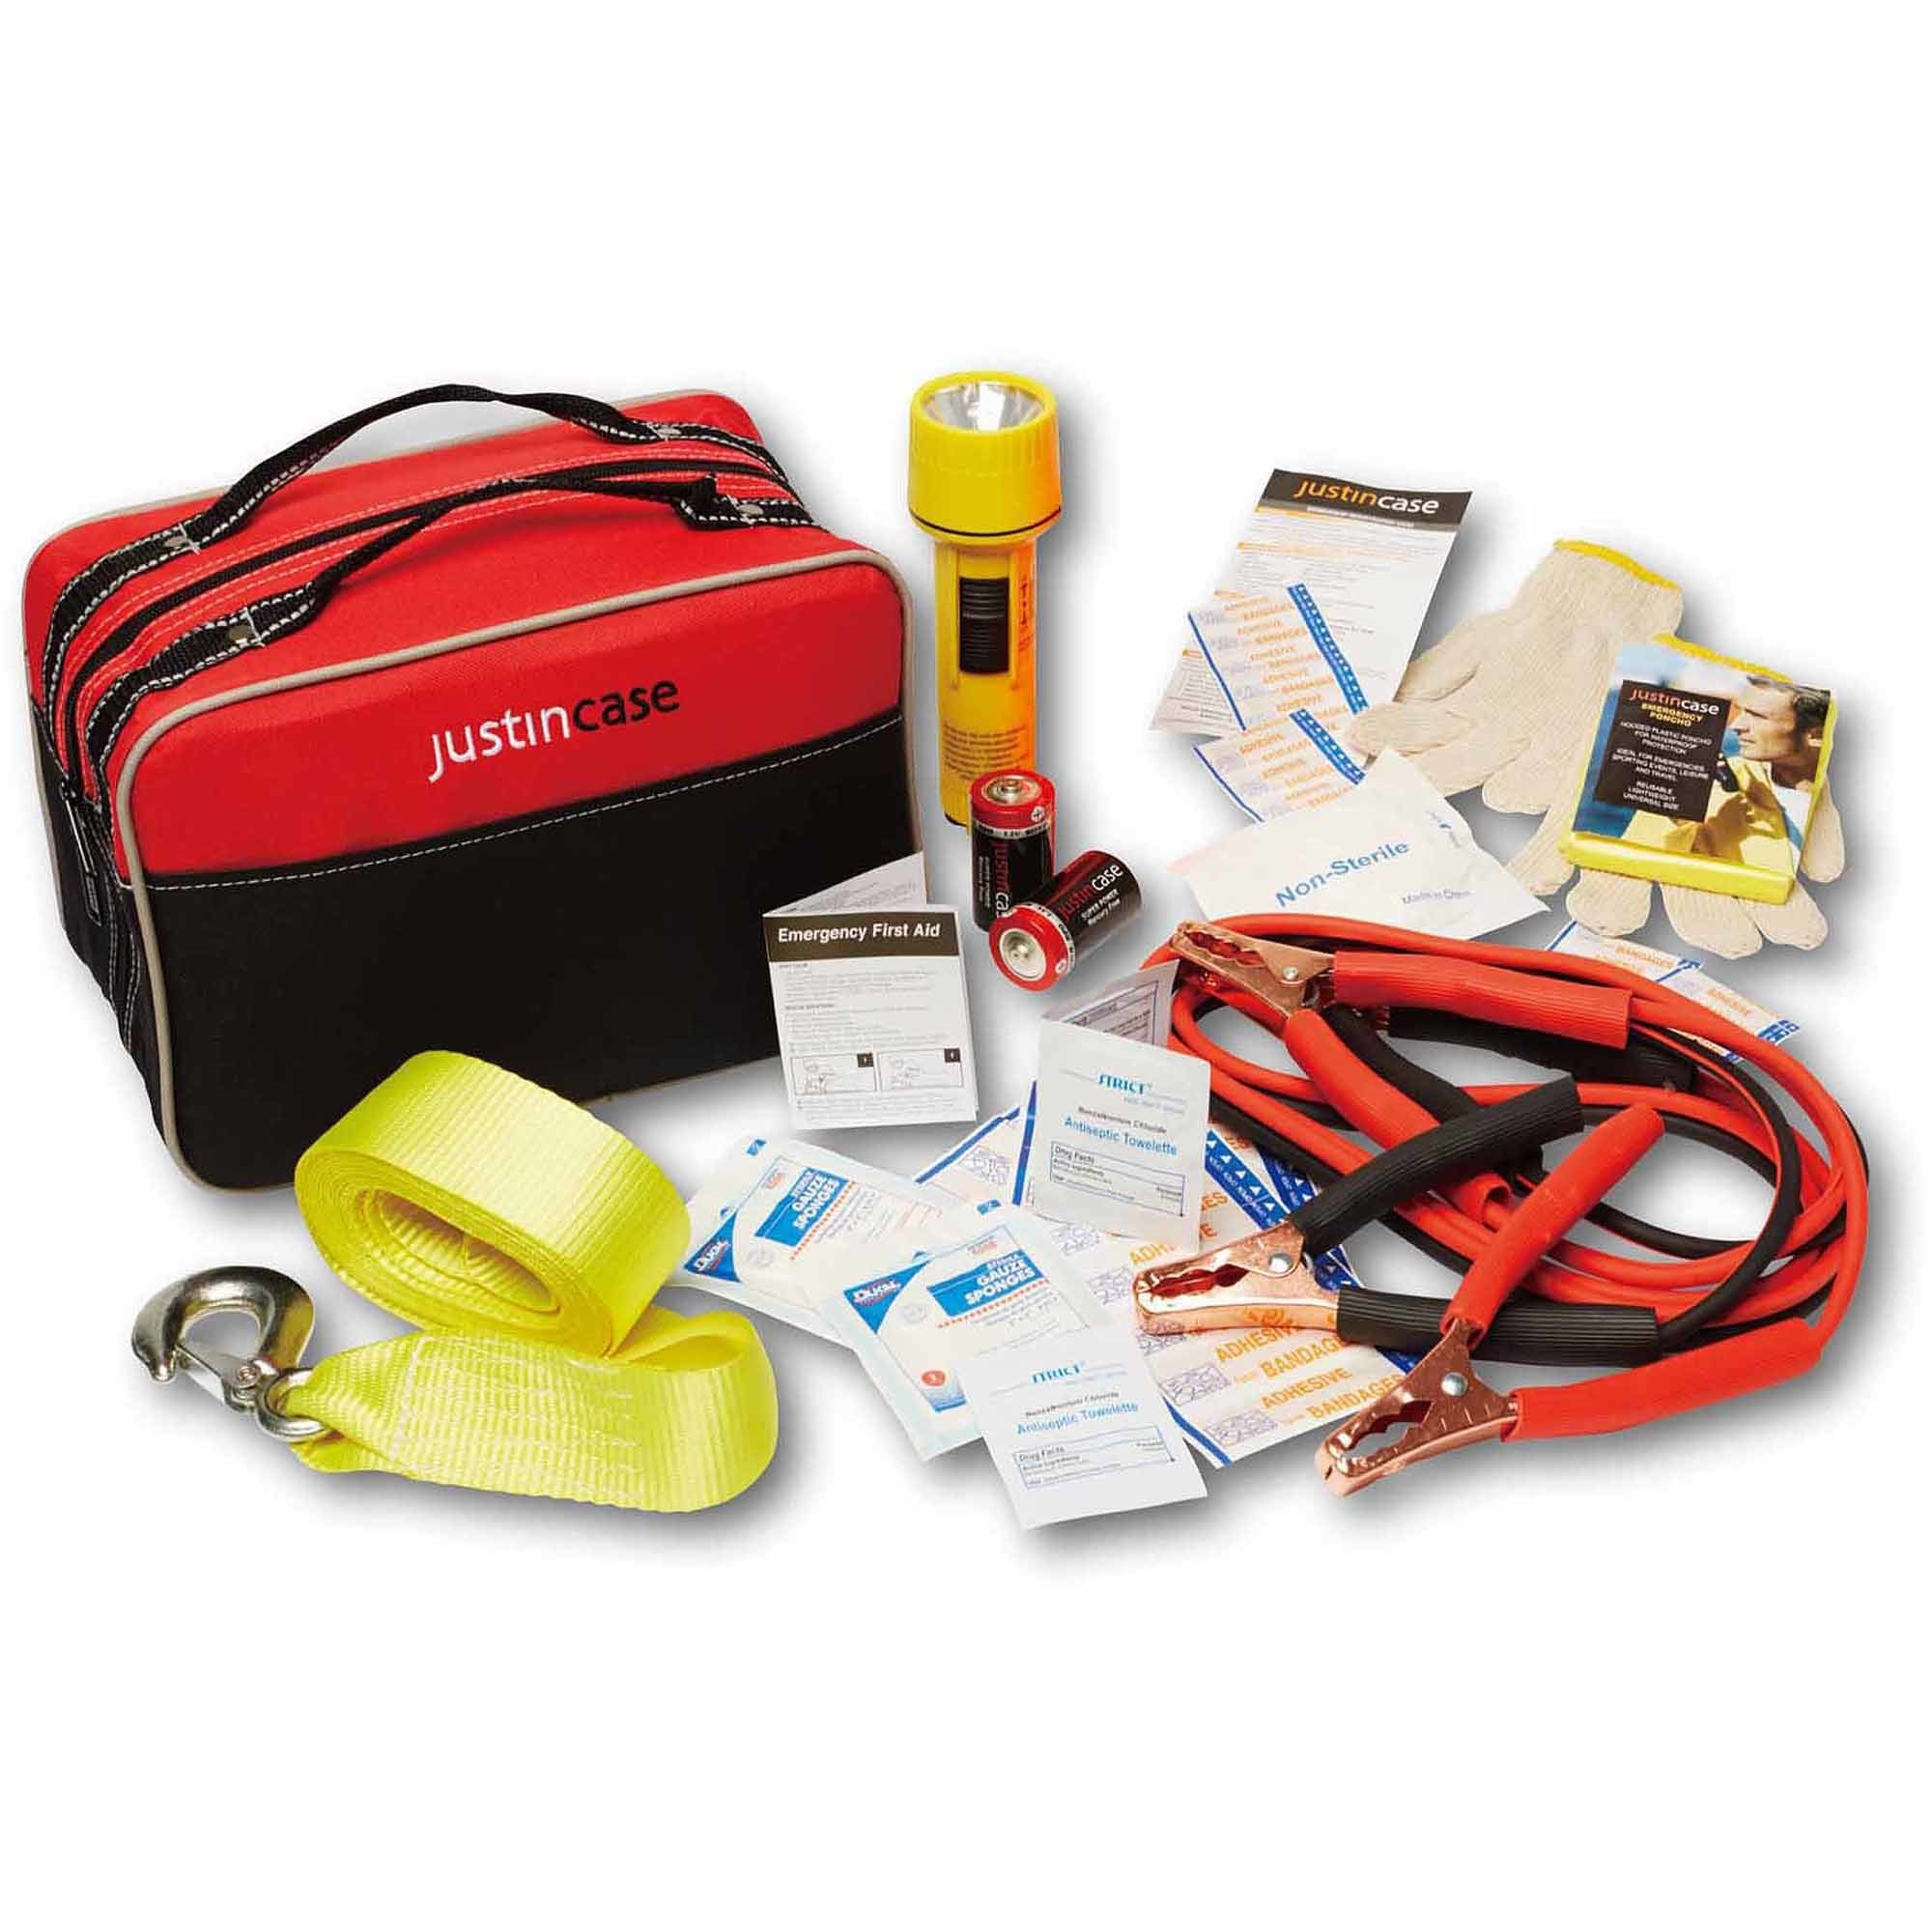 car safety kit with all of the contents lying around the carrying case